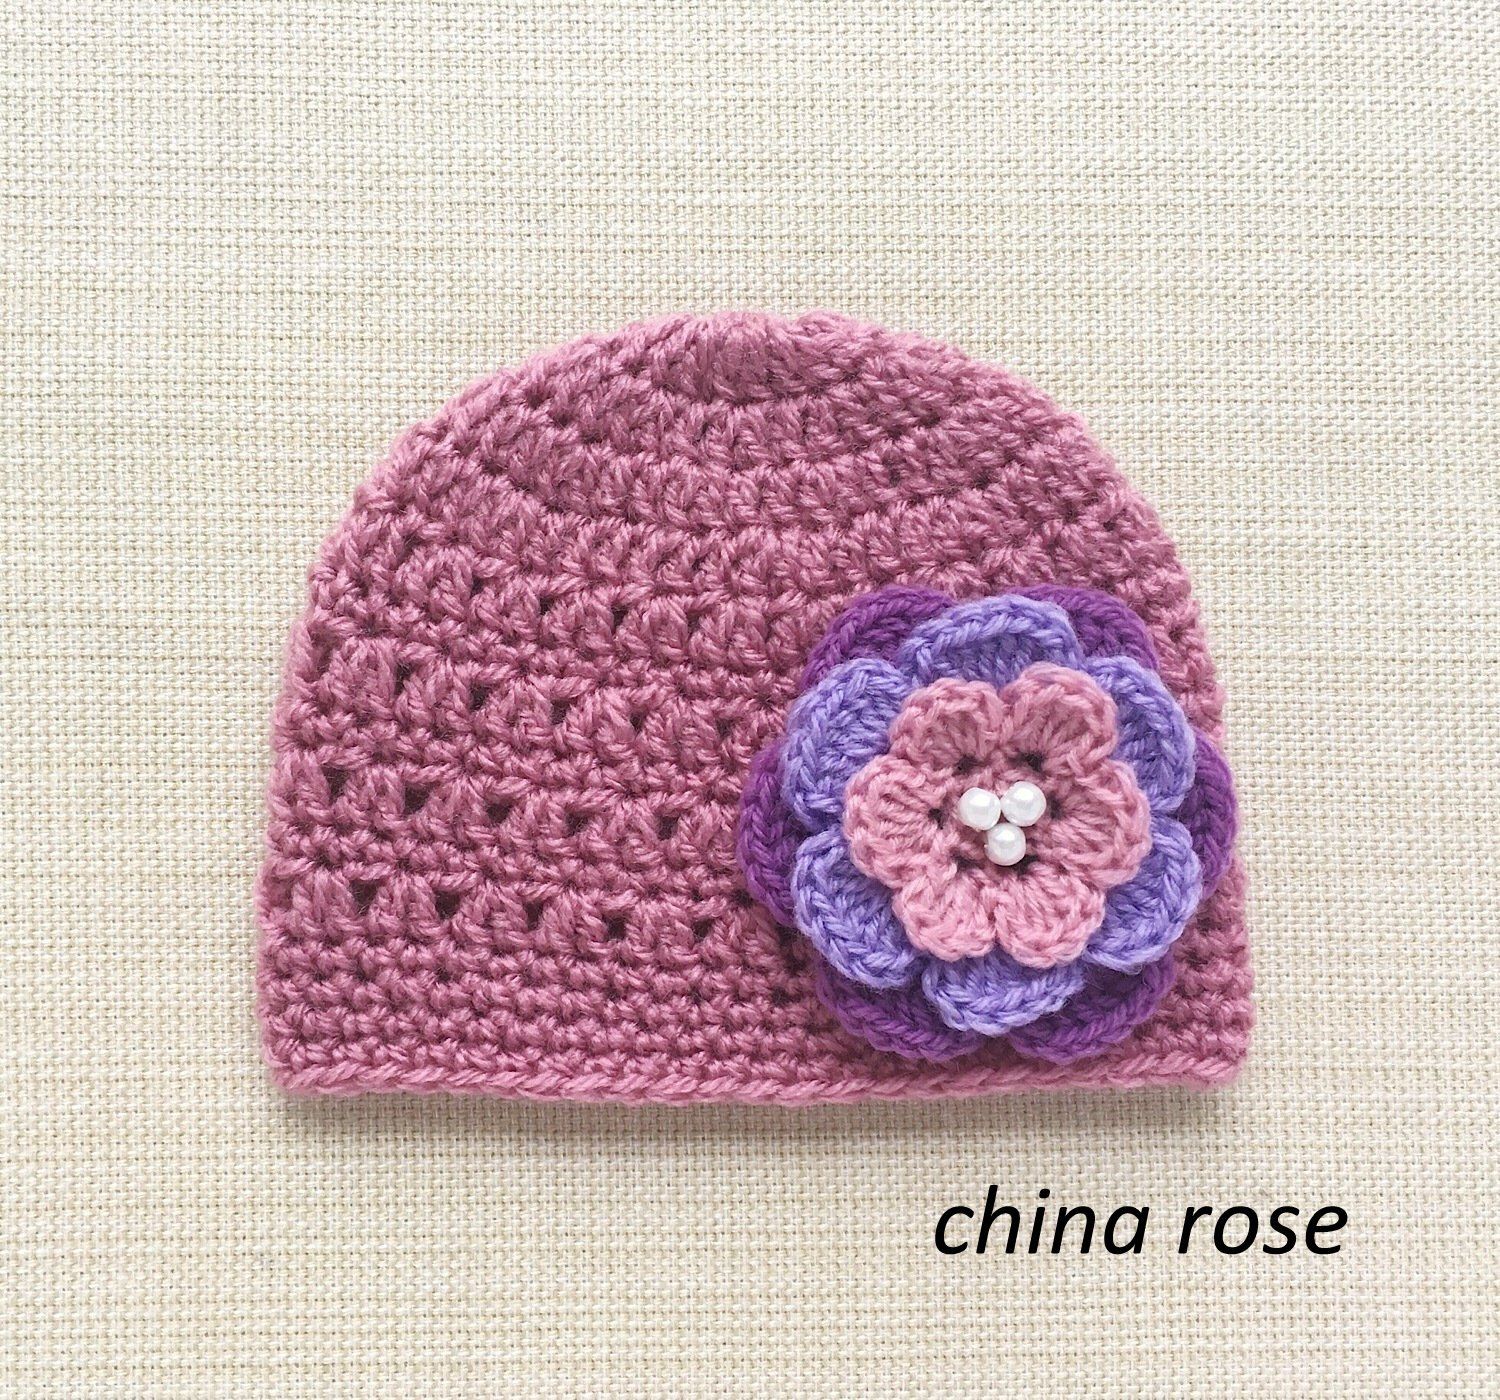 Amazon 0 6 Months Crochet Baby Hats With Flower Cute New Born